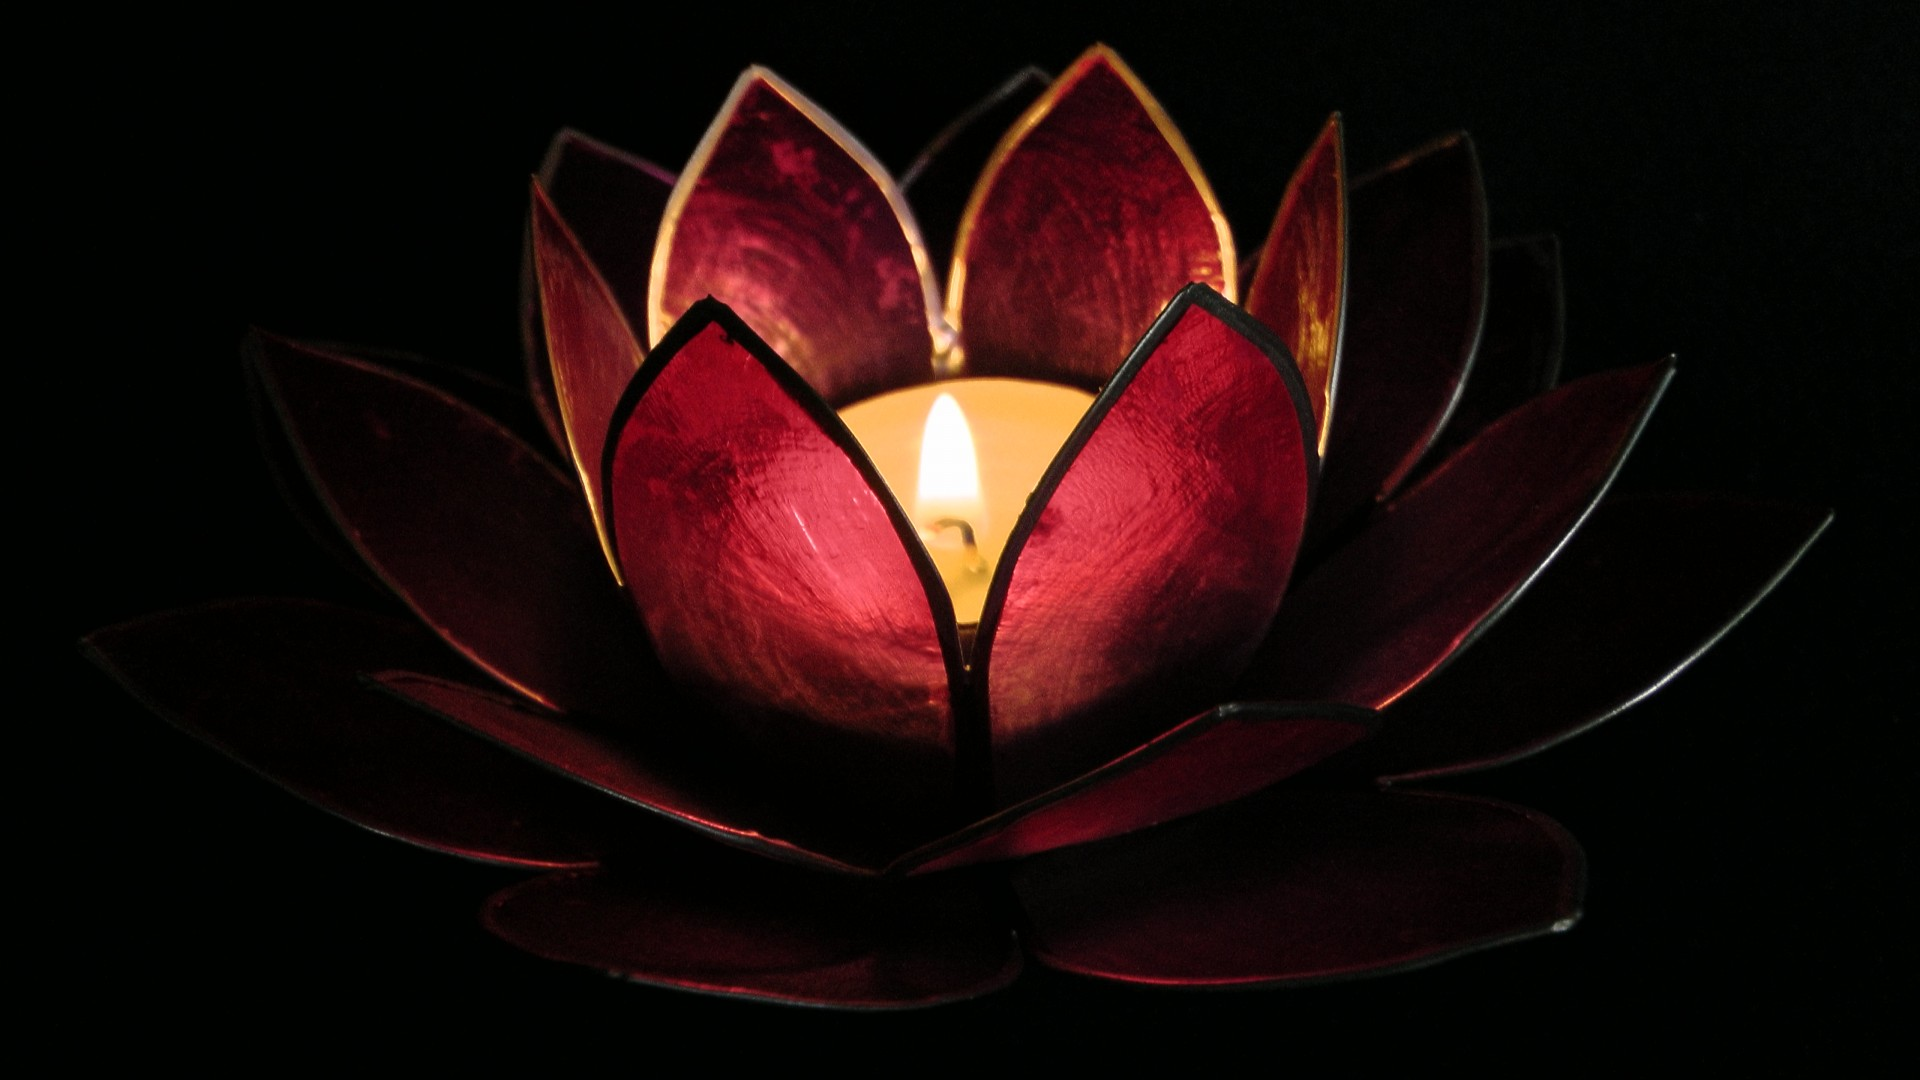 Lotus Flowerlotusflowerflowerscandle Free Photo From Needpix